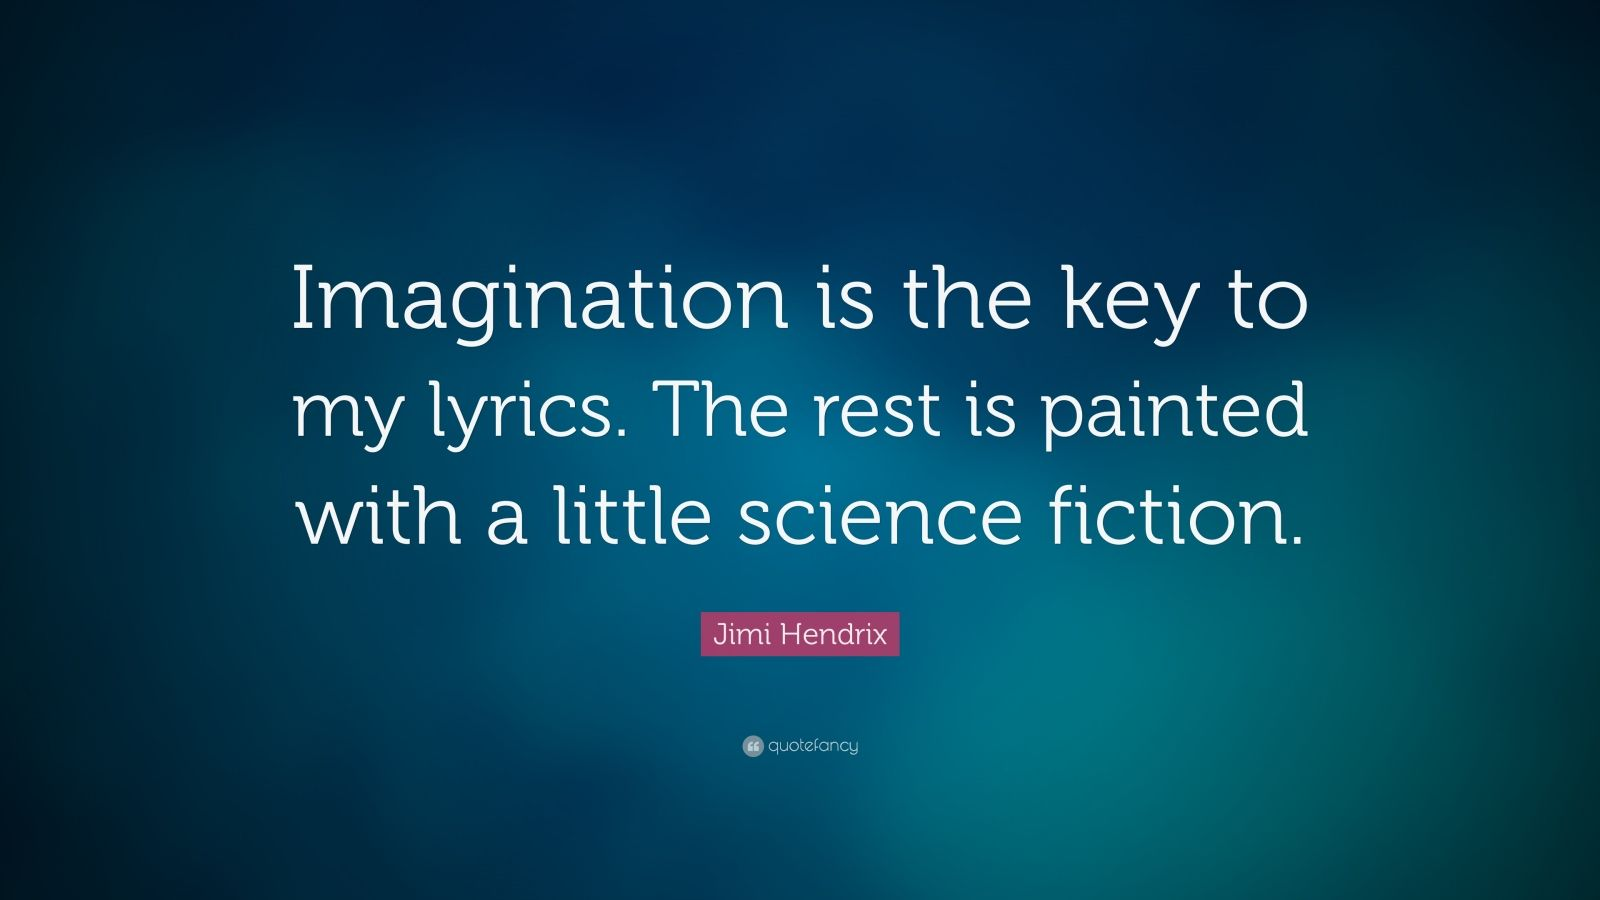 Imagination is the key to my lyrics the rest is painted with a little